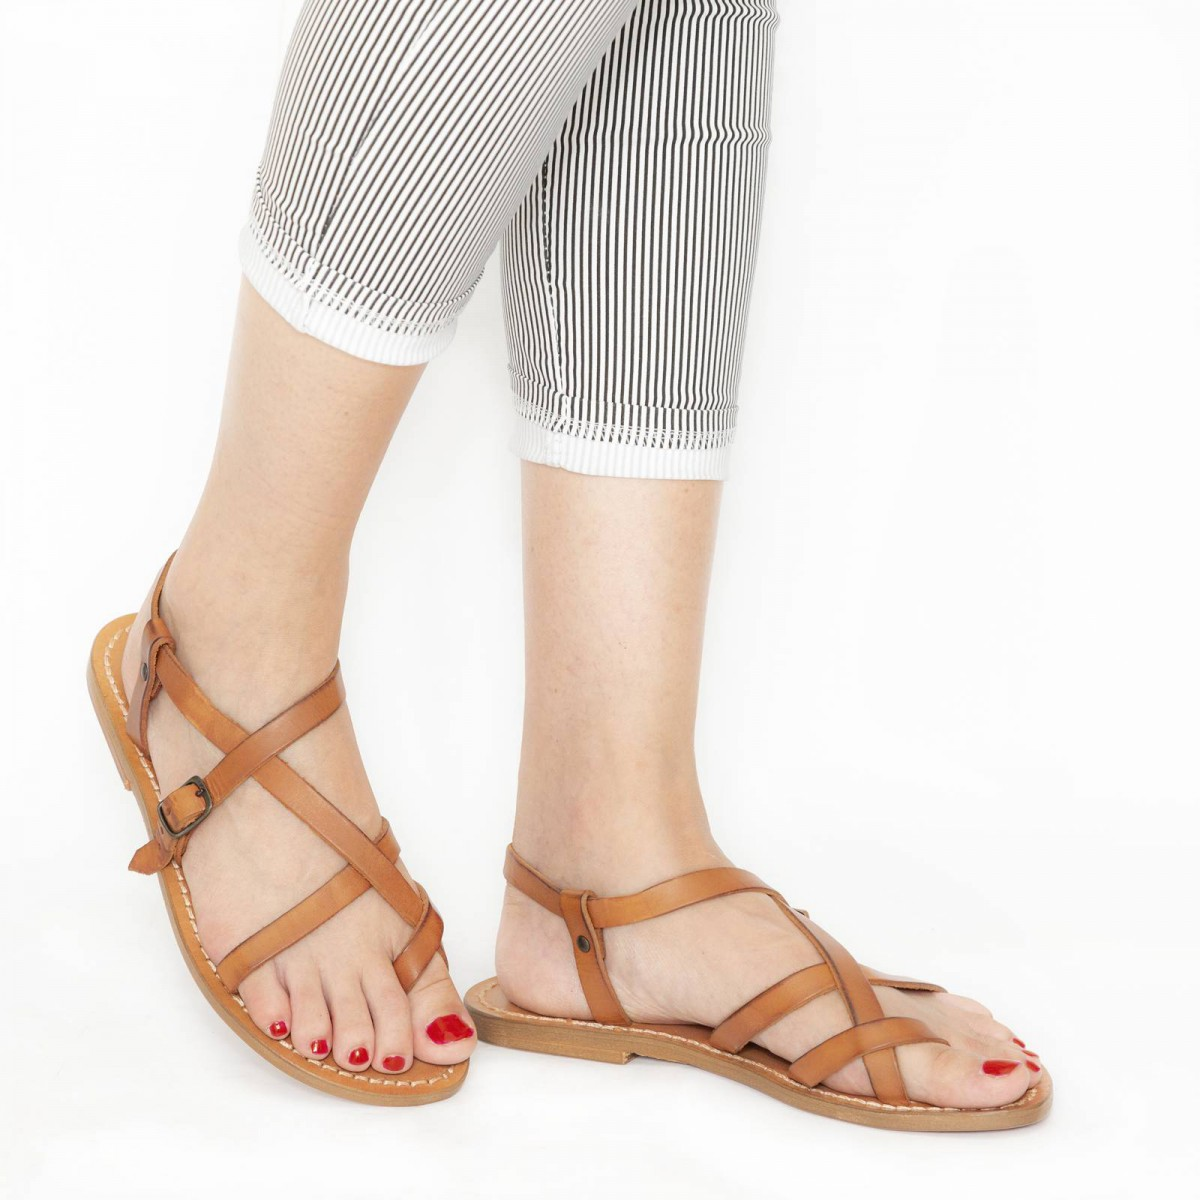 Handmade in Italy women/'s slave strappy sandals in vintage cuir leather